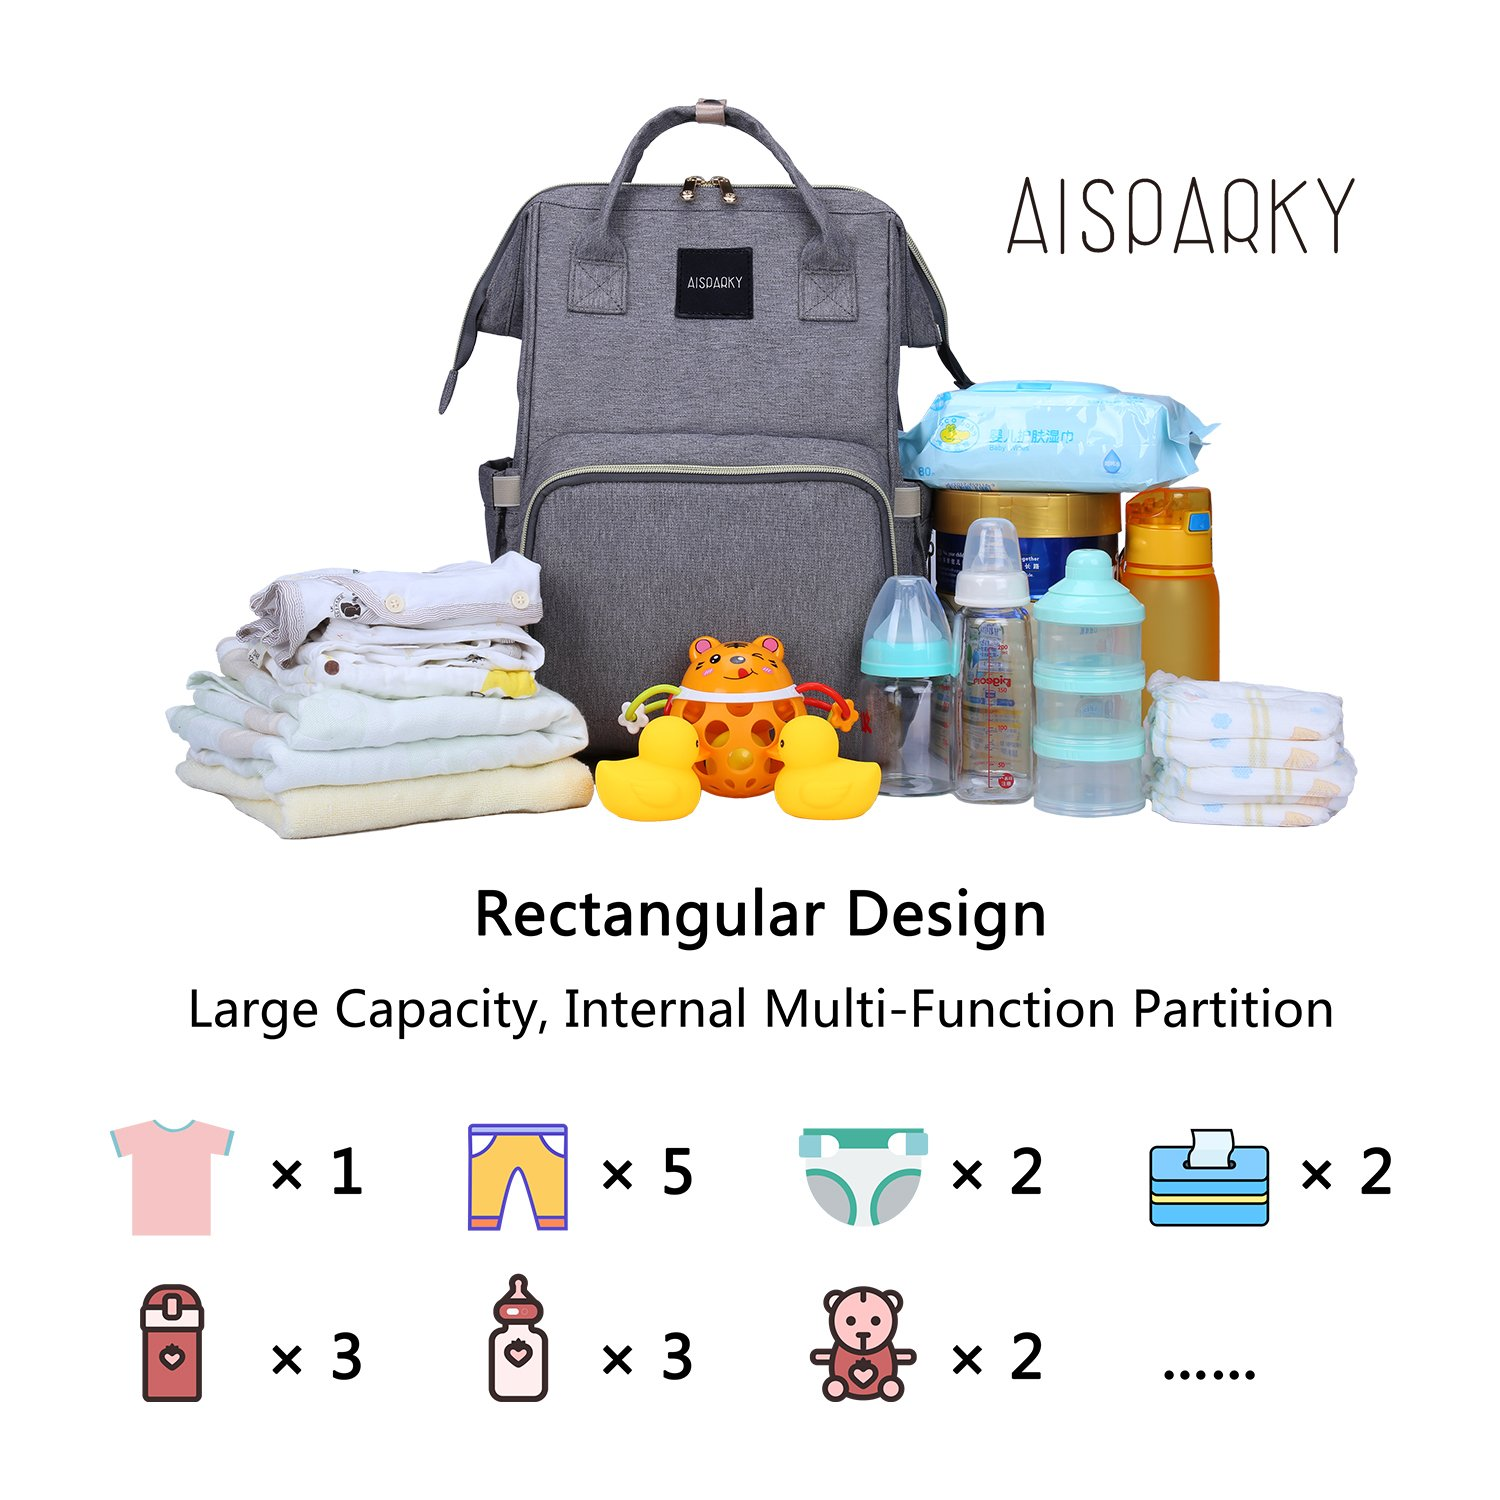 AISPARKY Diaper Bag Backpack Multi-Function Waterproof Travel Nappy Bag for Baby Care, Large Capacity, Durable and Stylish Changing Bag for Mom and Dad, Black by AISPARKY (Image #7)